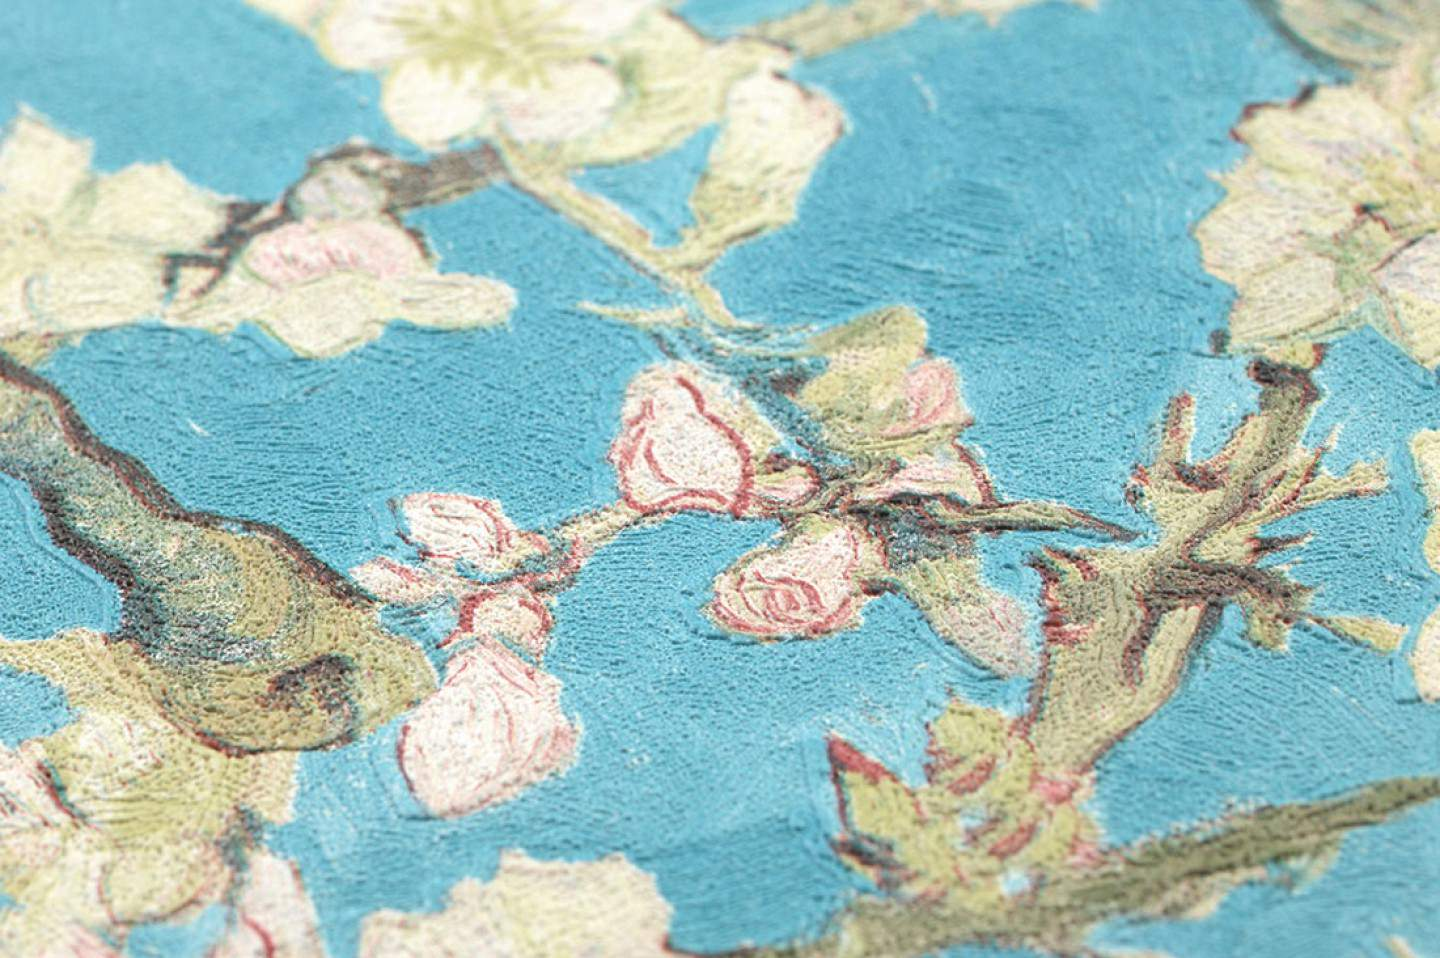 1440x958 Wallpaper VanGogh Blossom (Turquoise, Pale green, Brown red, Green ...